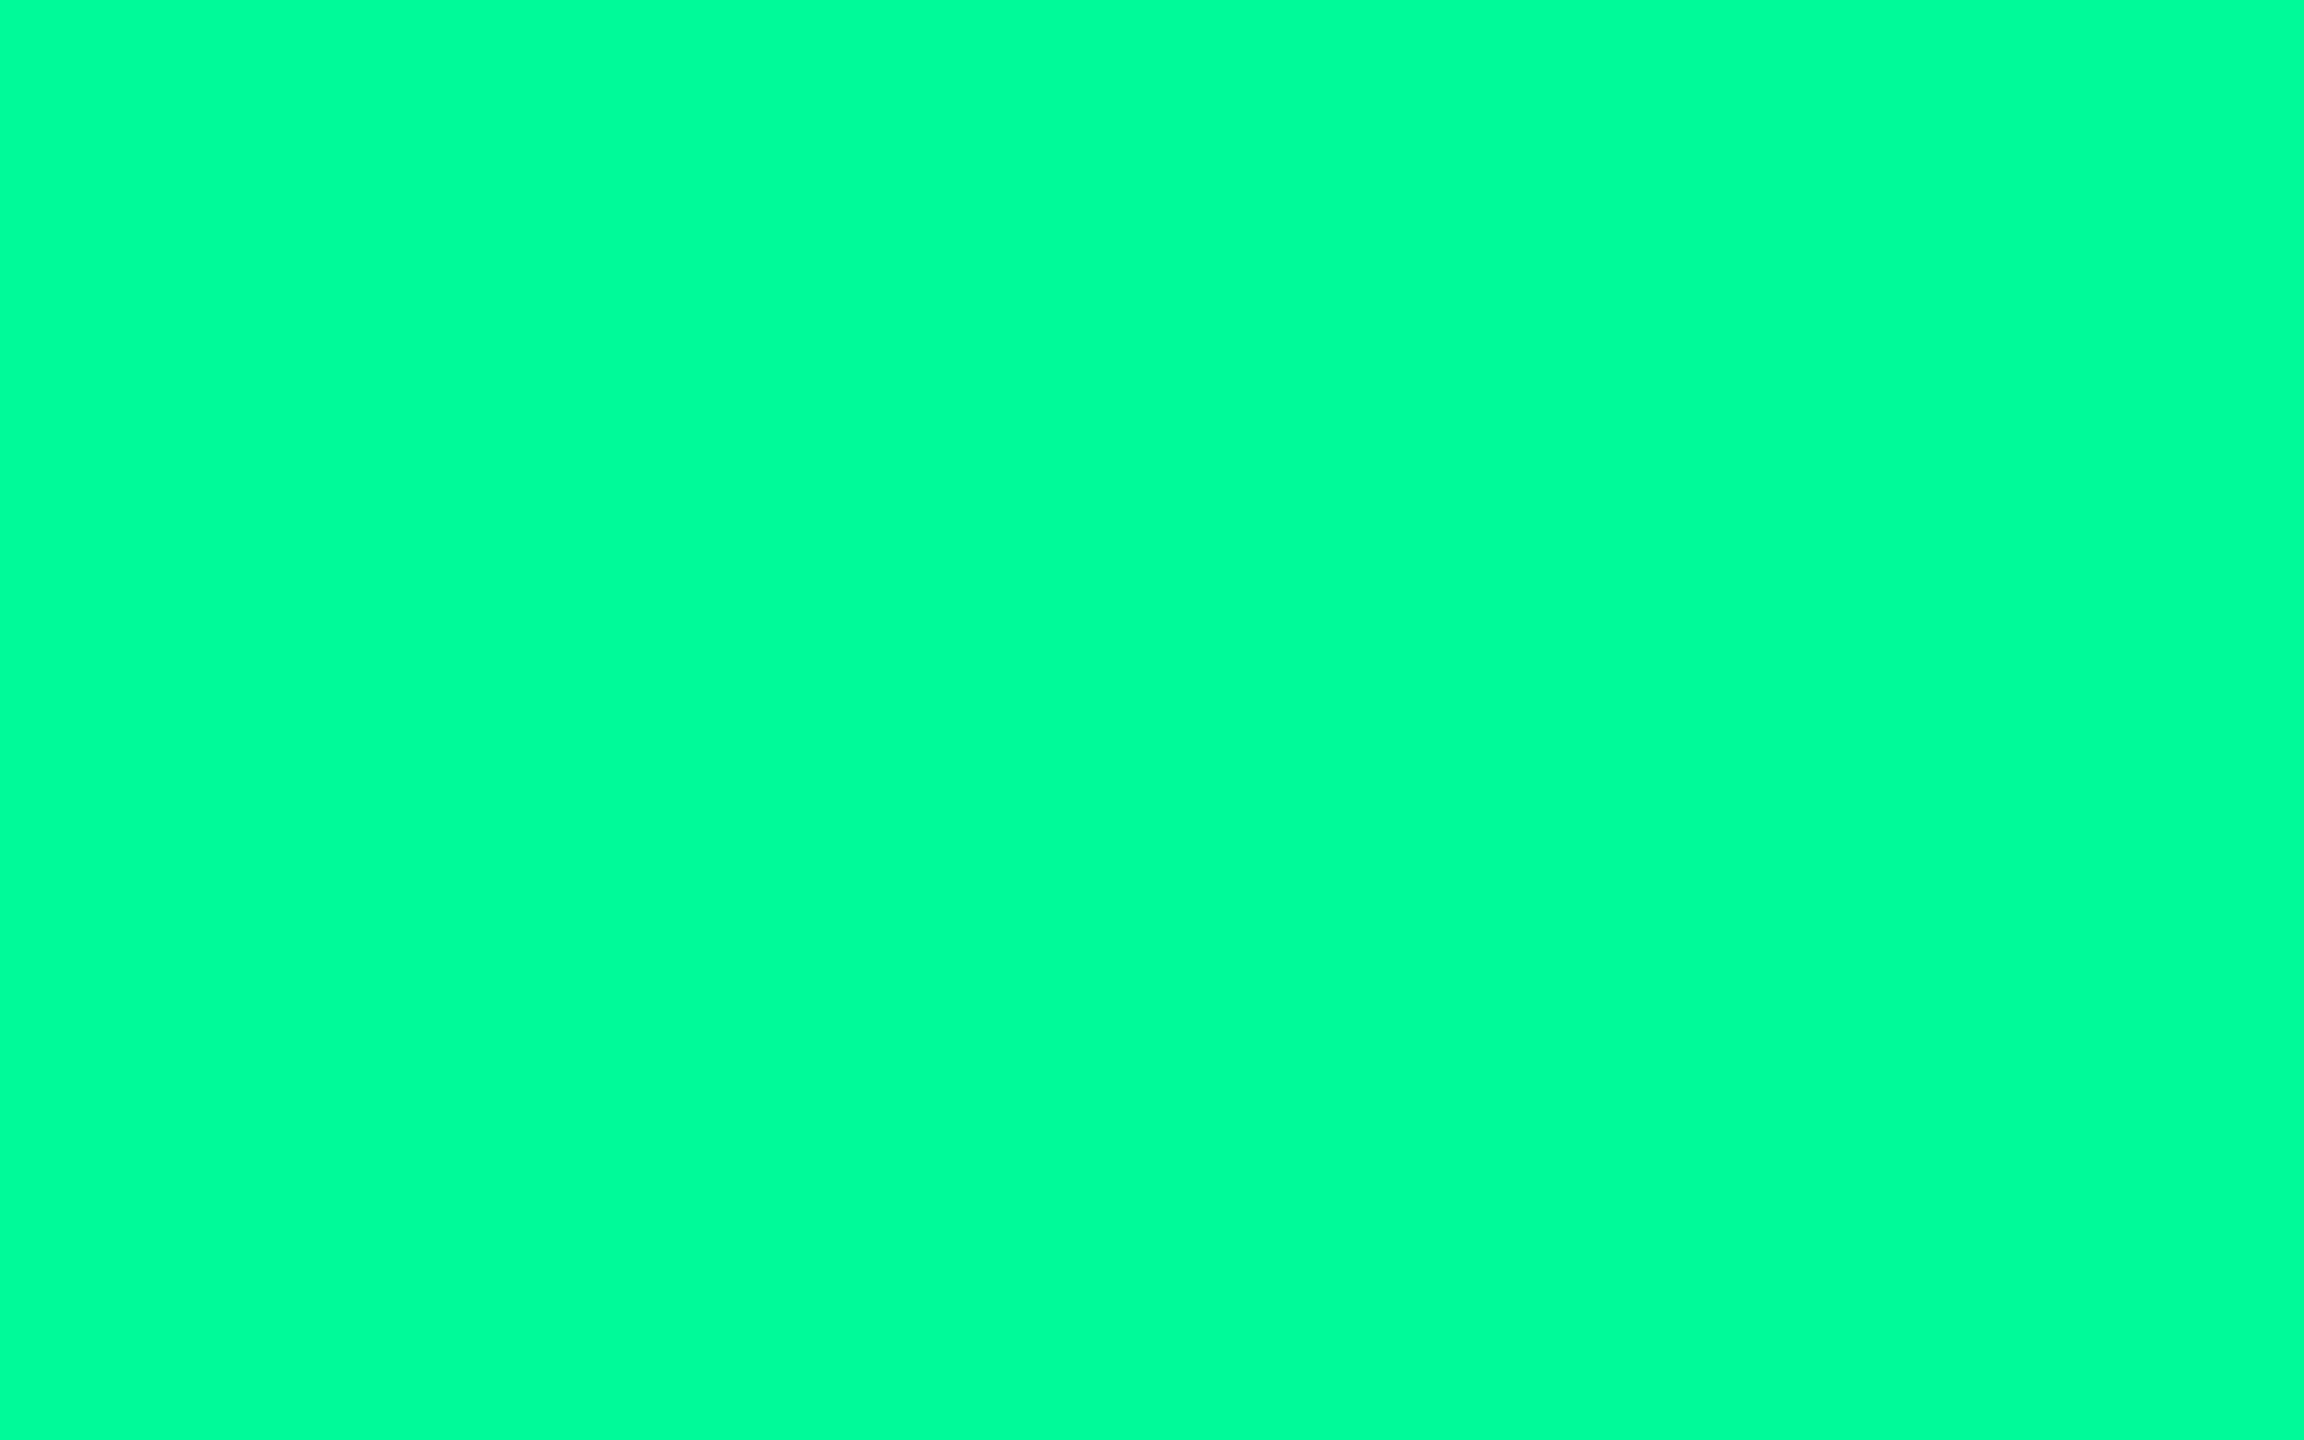 2304x1440 Medium Spring Green Solid Color Background